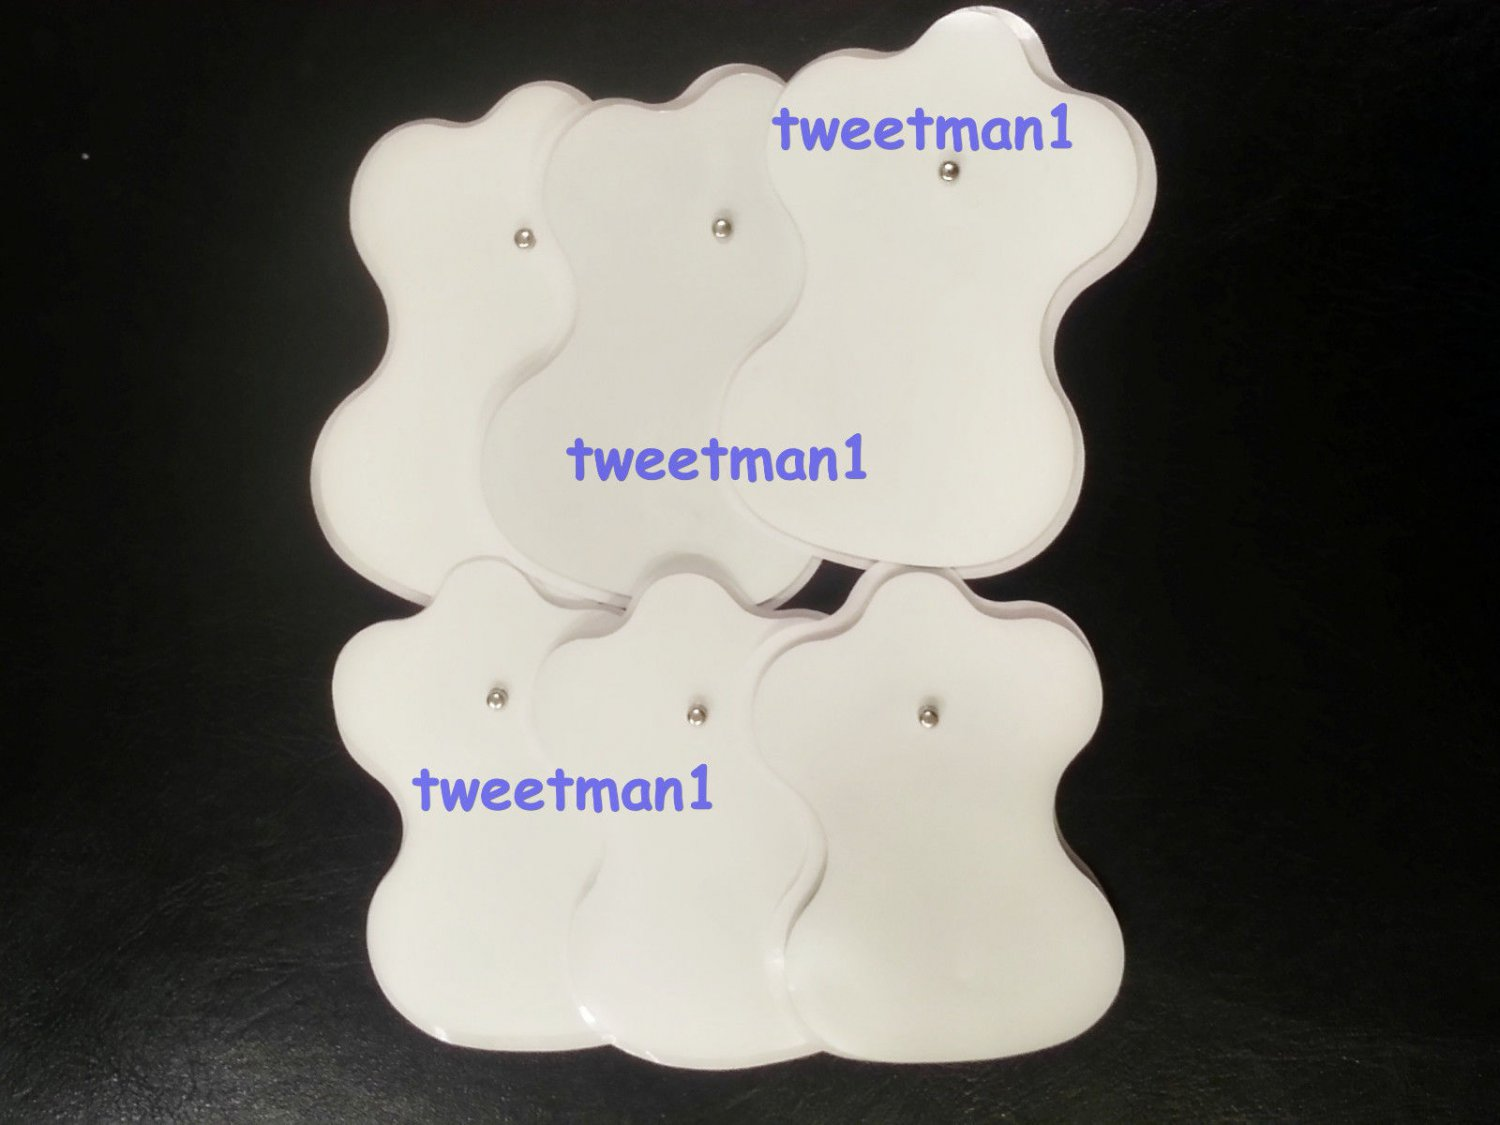 `Electrode Pads for Digital Massage (6) /TENS/Electronic Physiotherapy/Snap-on